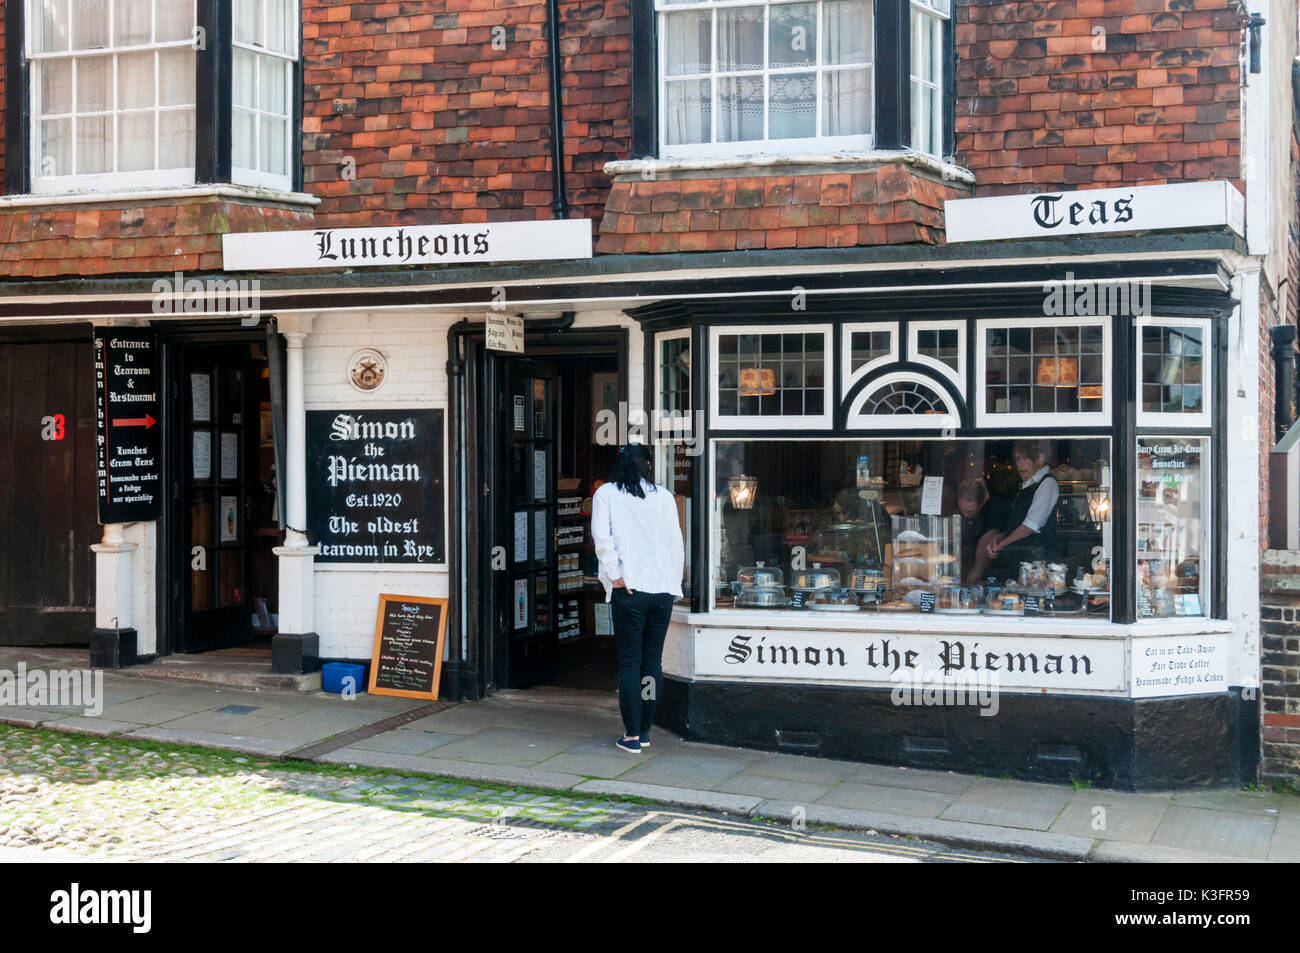 Simon the Pieman, claims to be the oldest tearoom in Rye.  In Lion Street, Rye, East Sussex. - Stock Image